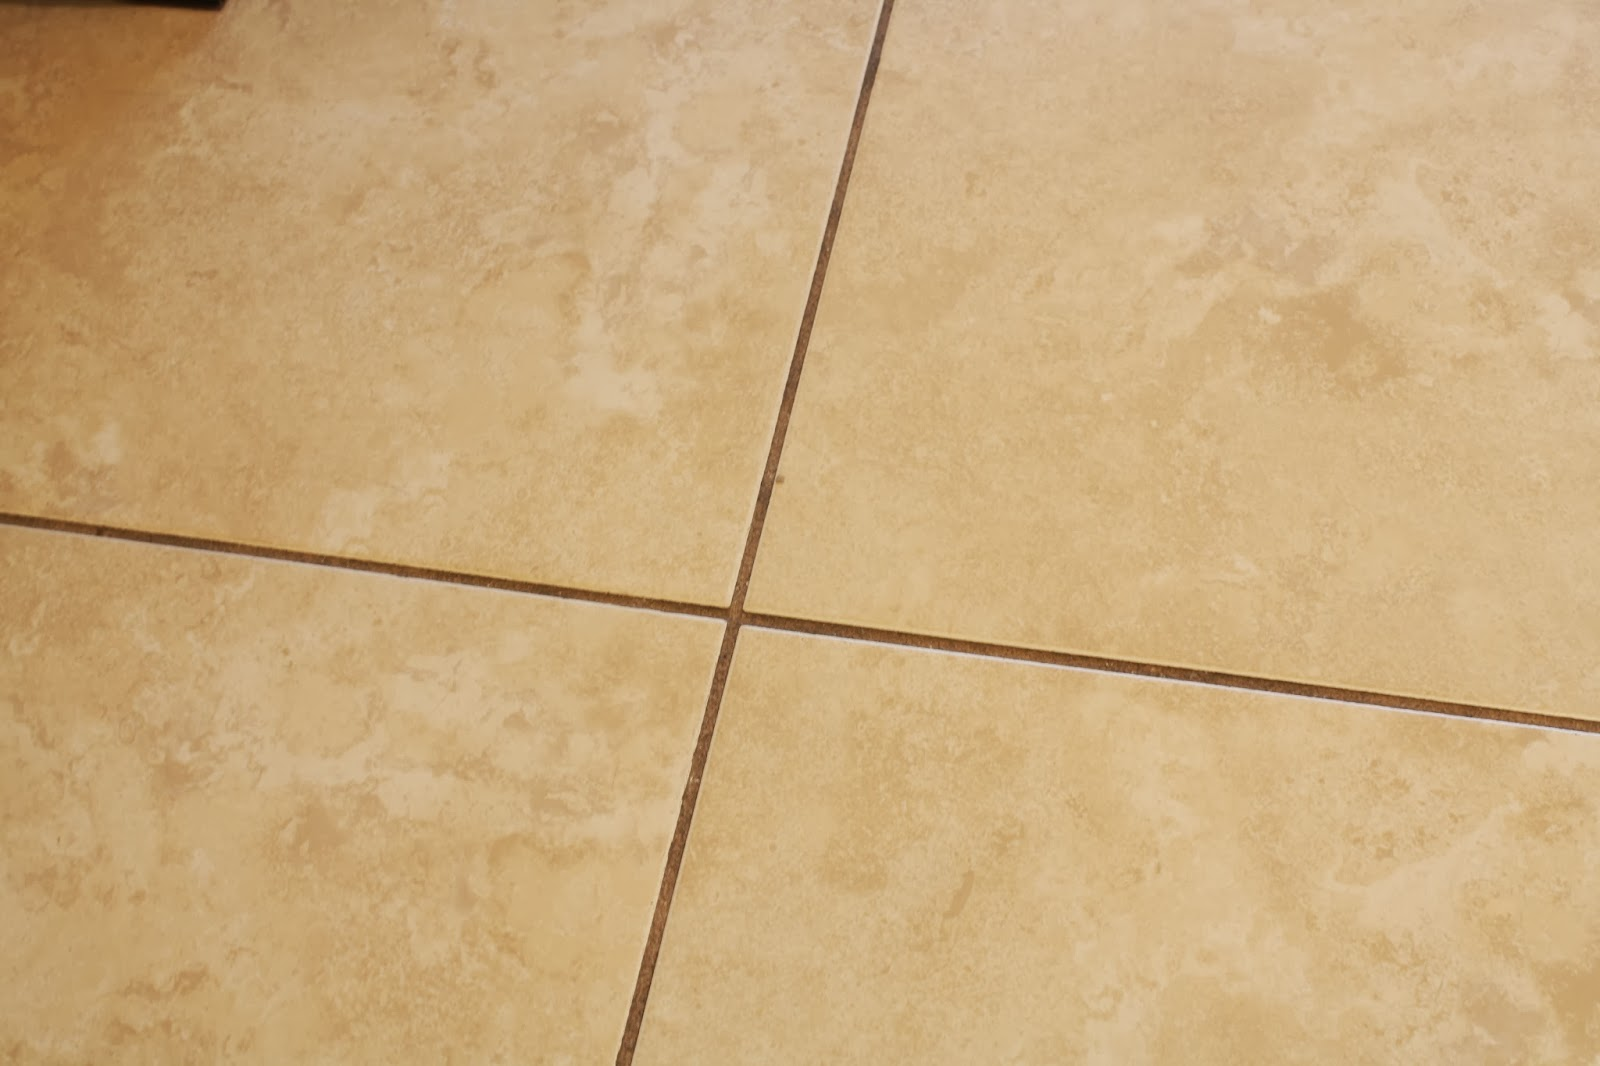 Coastal Charm Cleaning Tile Grout